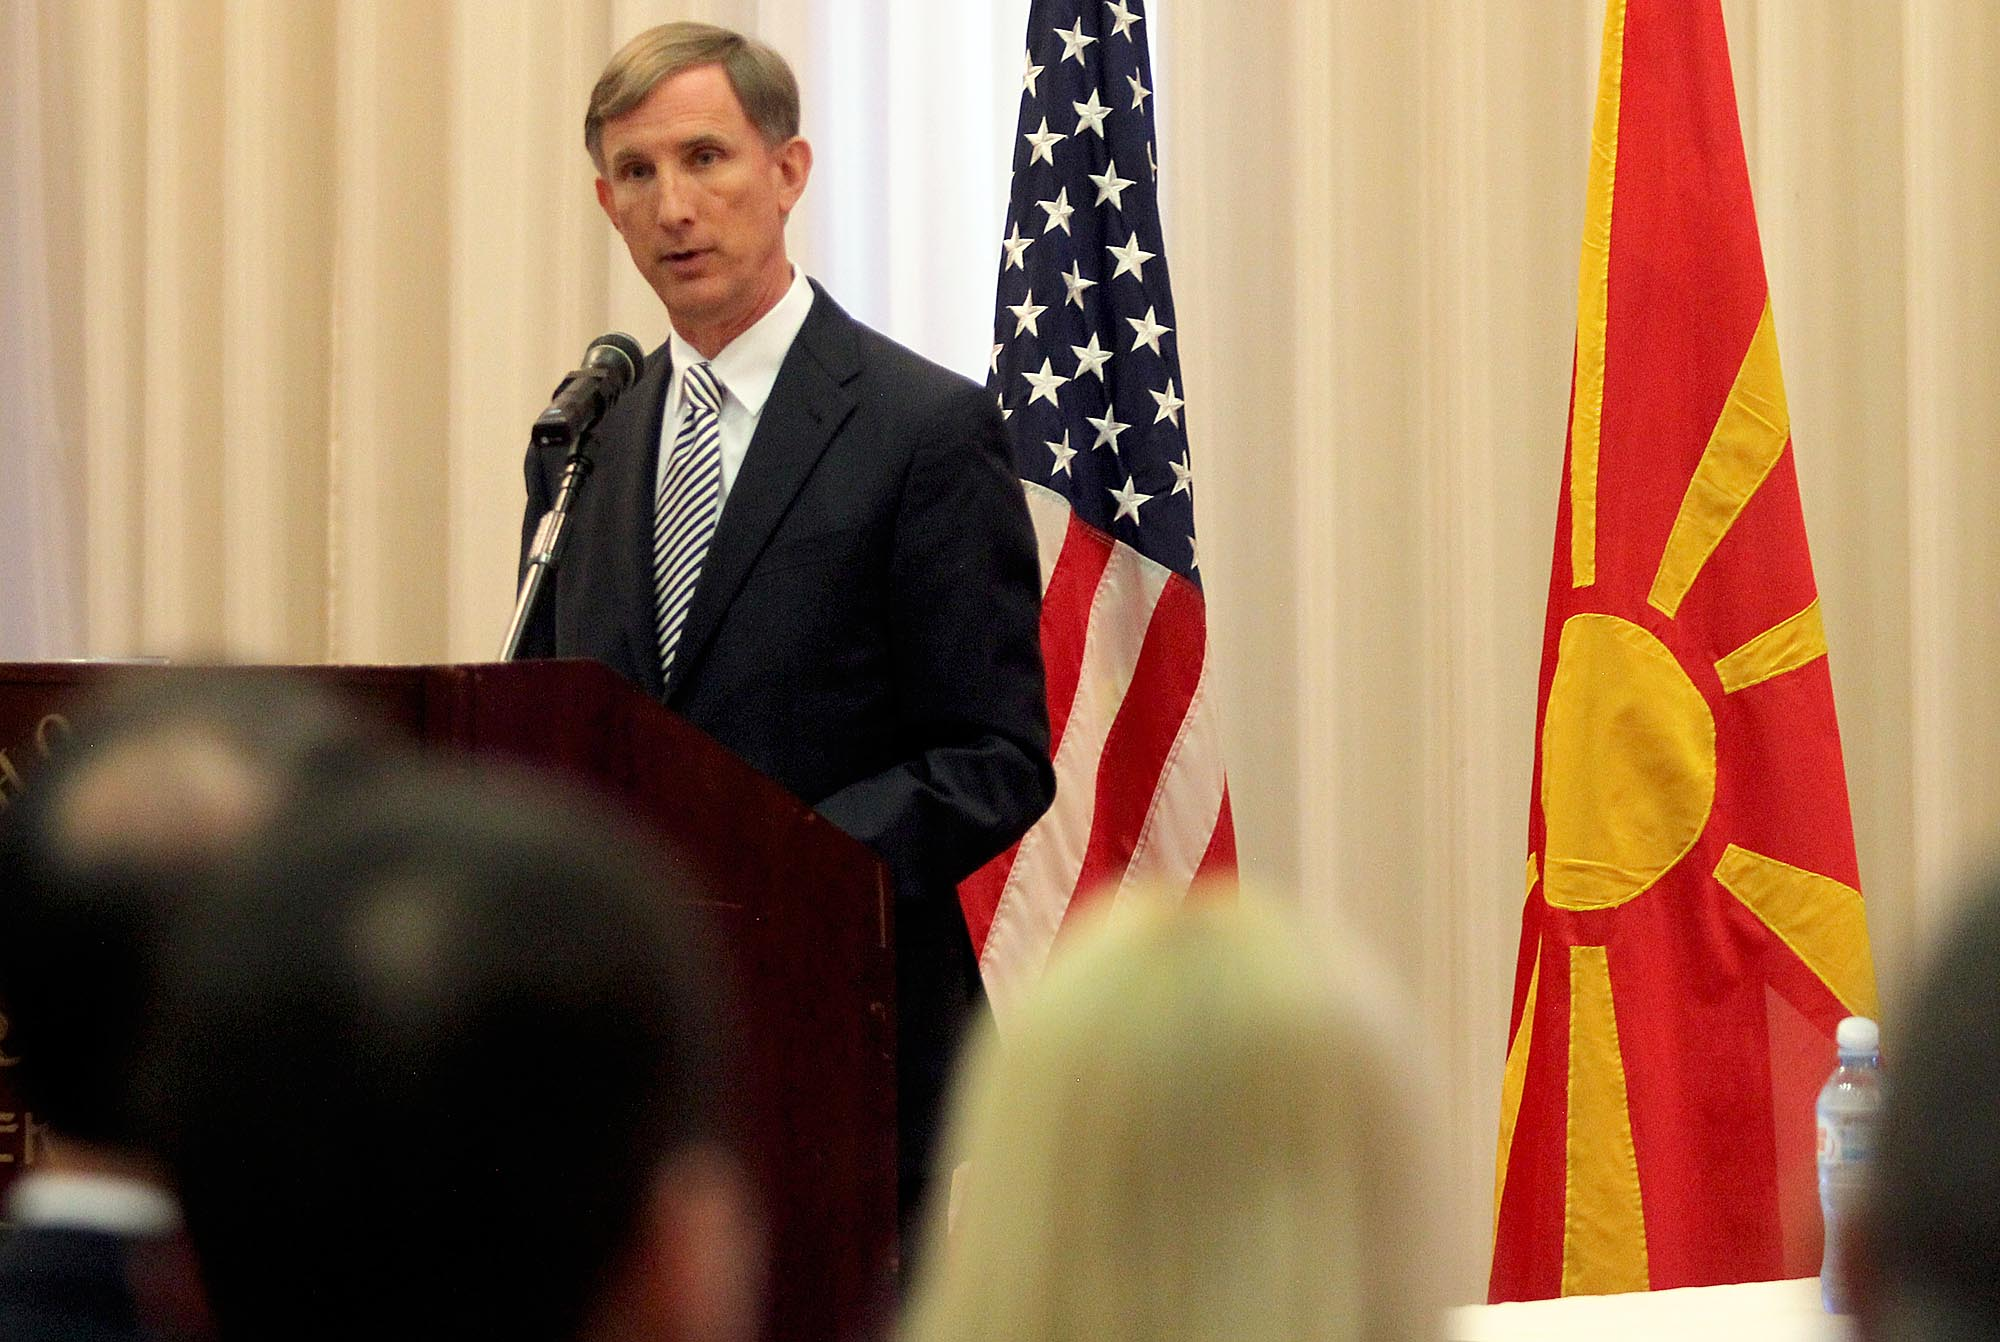 Divisions between Macedonians and Albanians are increasing, says US ambassador